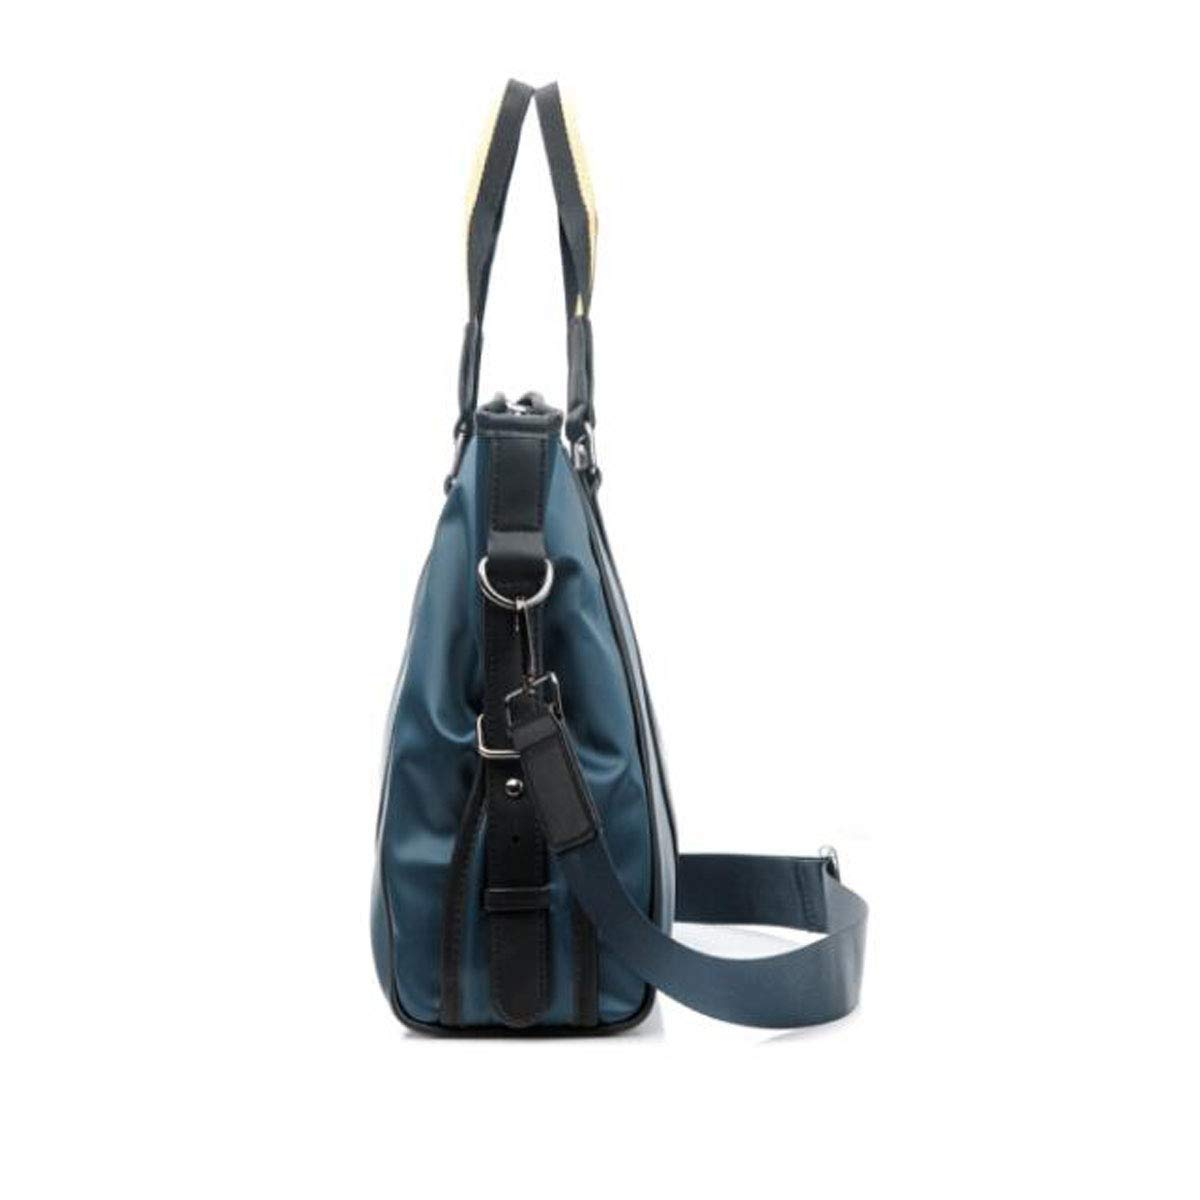 Xingganglengyin Briefcase Size: 37830cm Very Beautiful Color : Black New Portable Mens Business Tote Color : Black Black and Blue